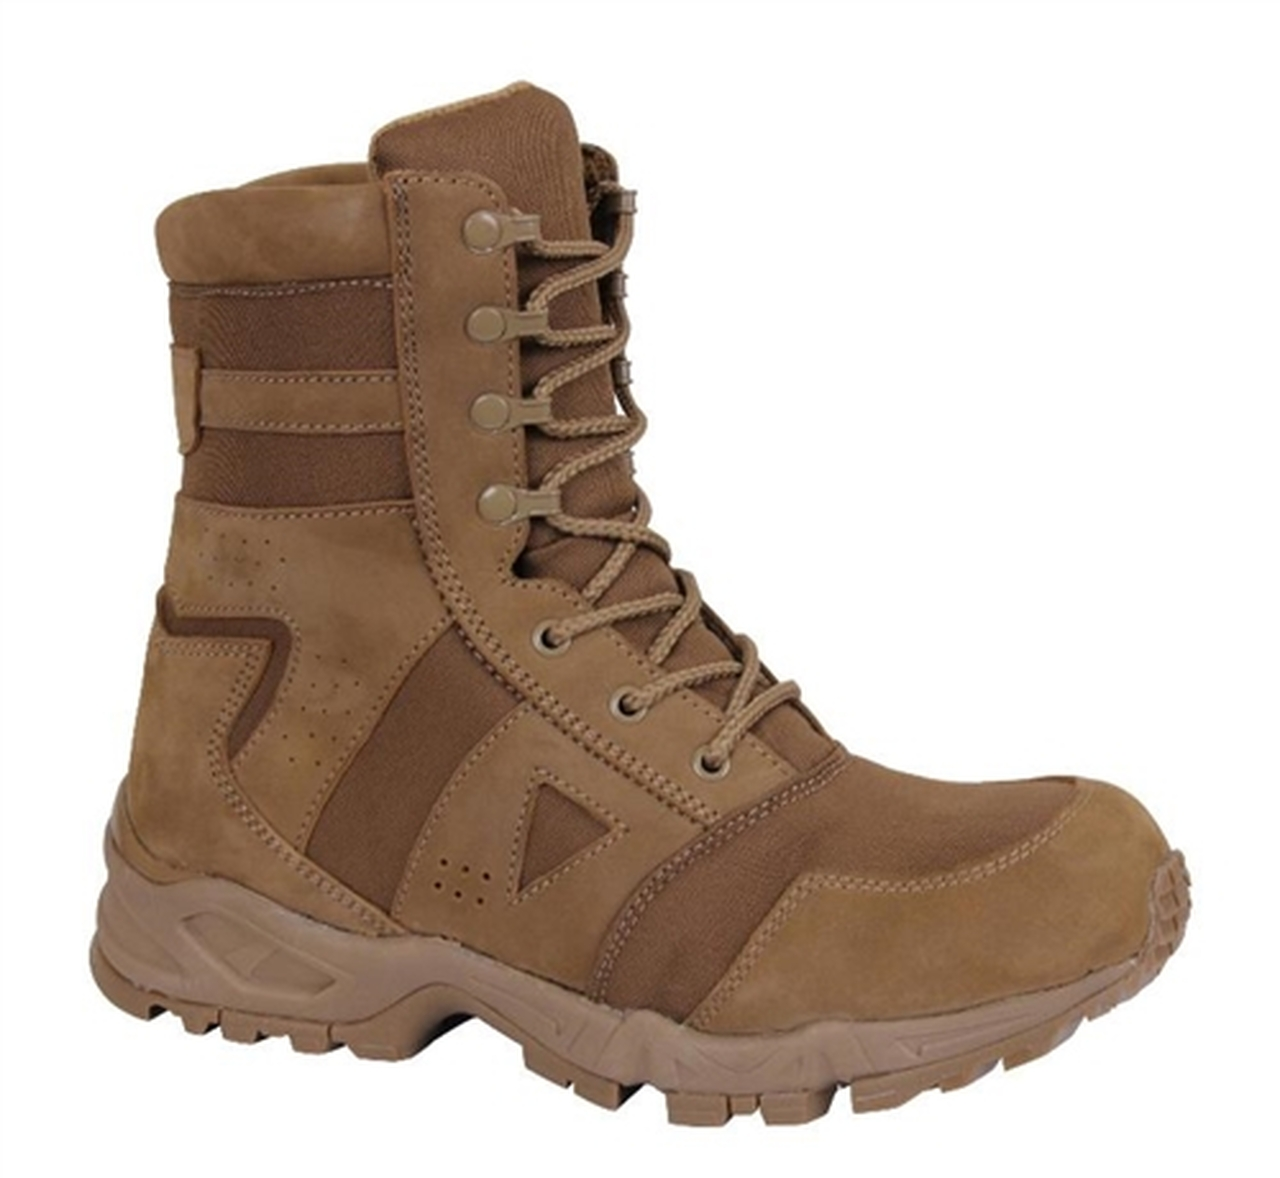 Coyote Forced Entry Tactical Boot from Hessen Tactical